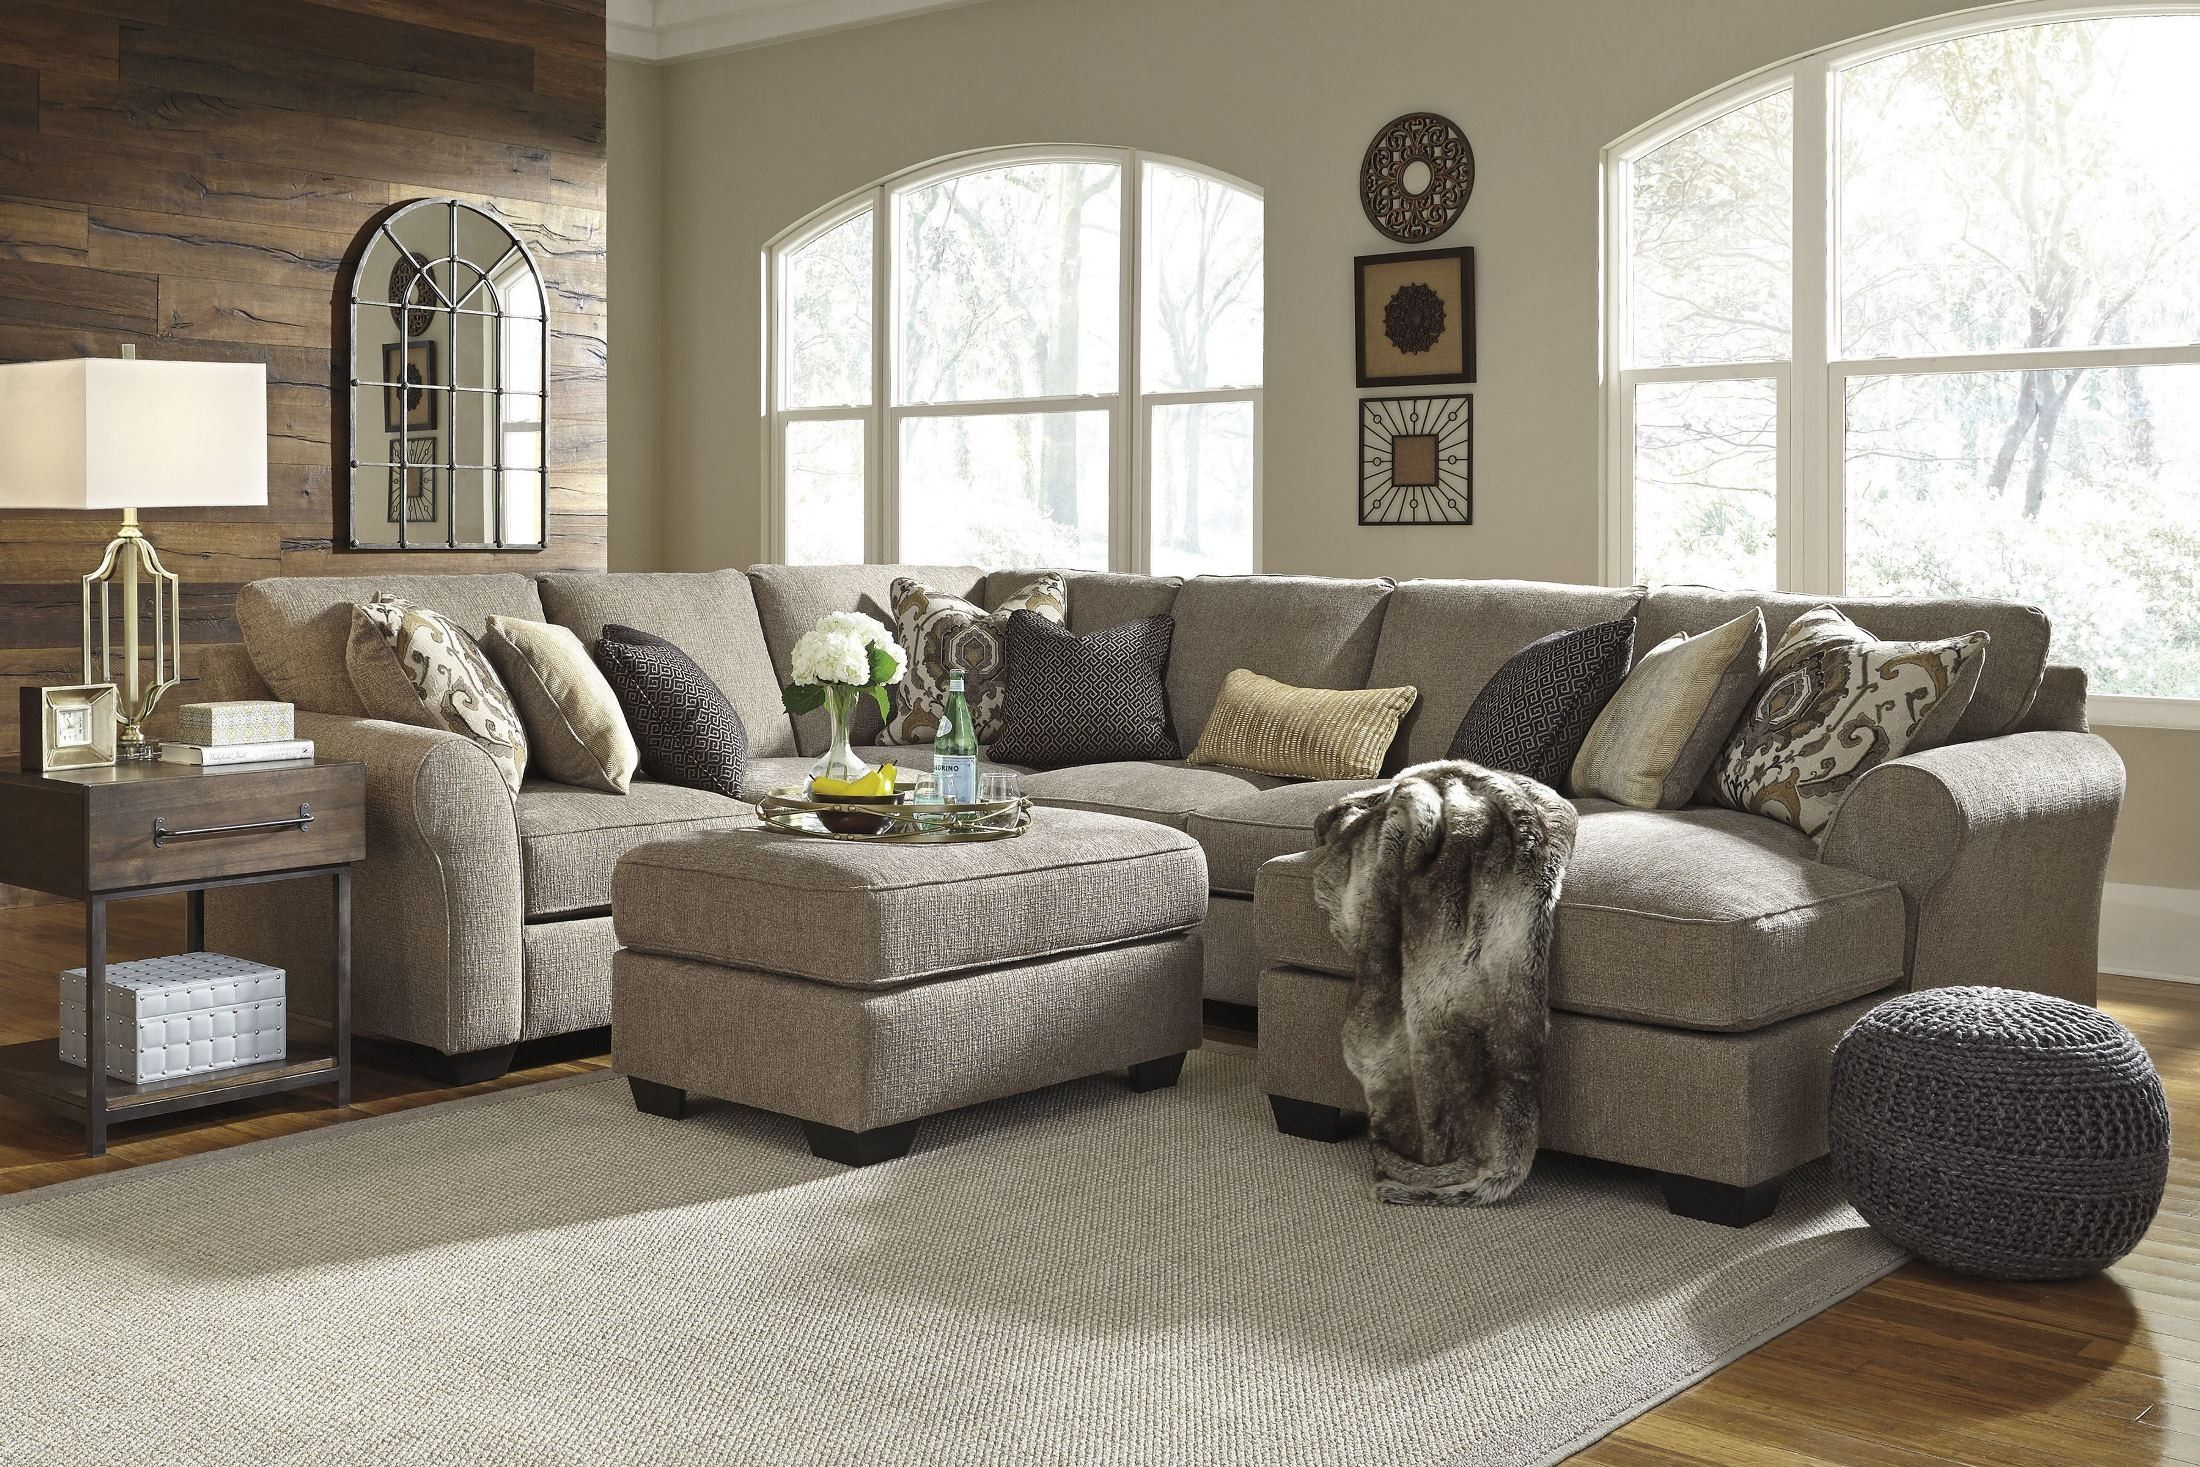 The Pantomine Sectional Speaks To Those Drawn To Fresh Contemporary Style With Richly Neutral Appeal Living Room Furniture City Furniture Sectional Sofa Couch